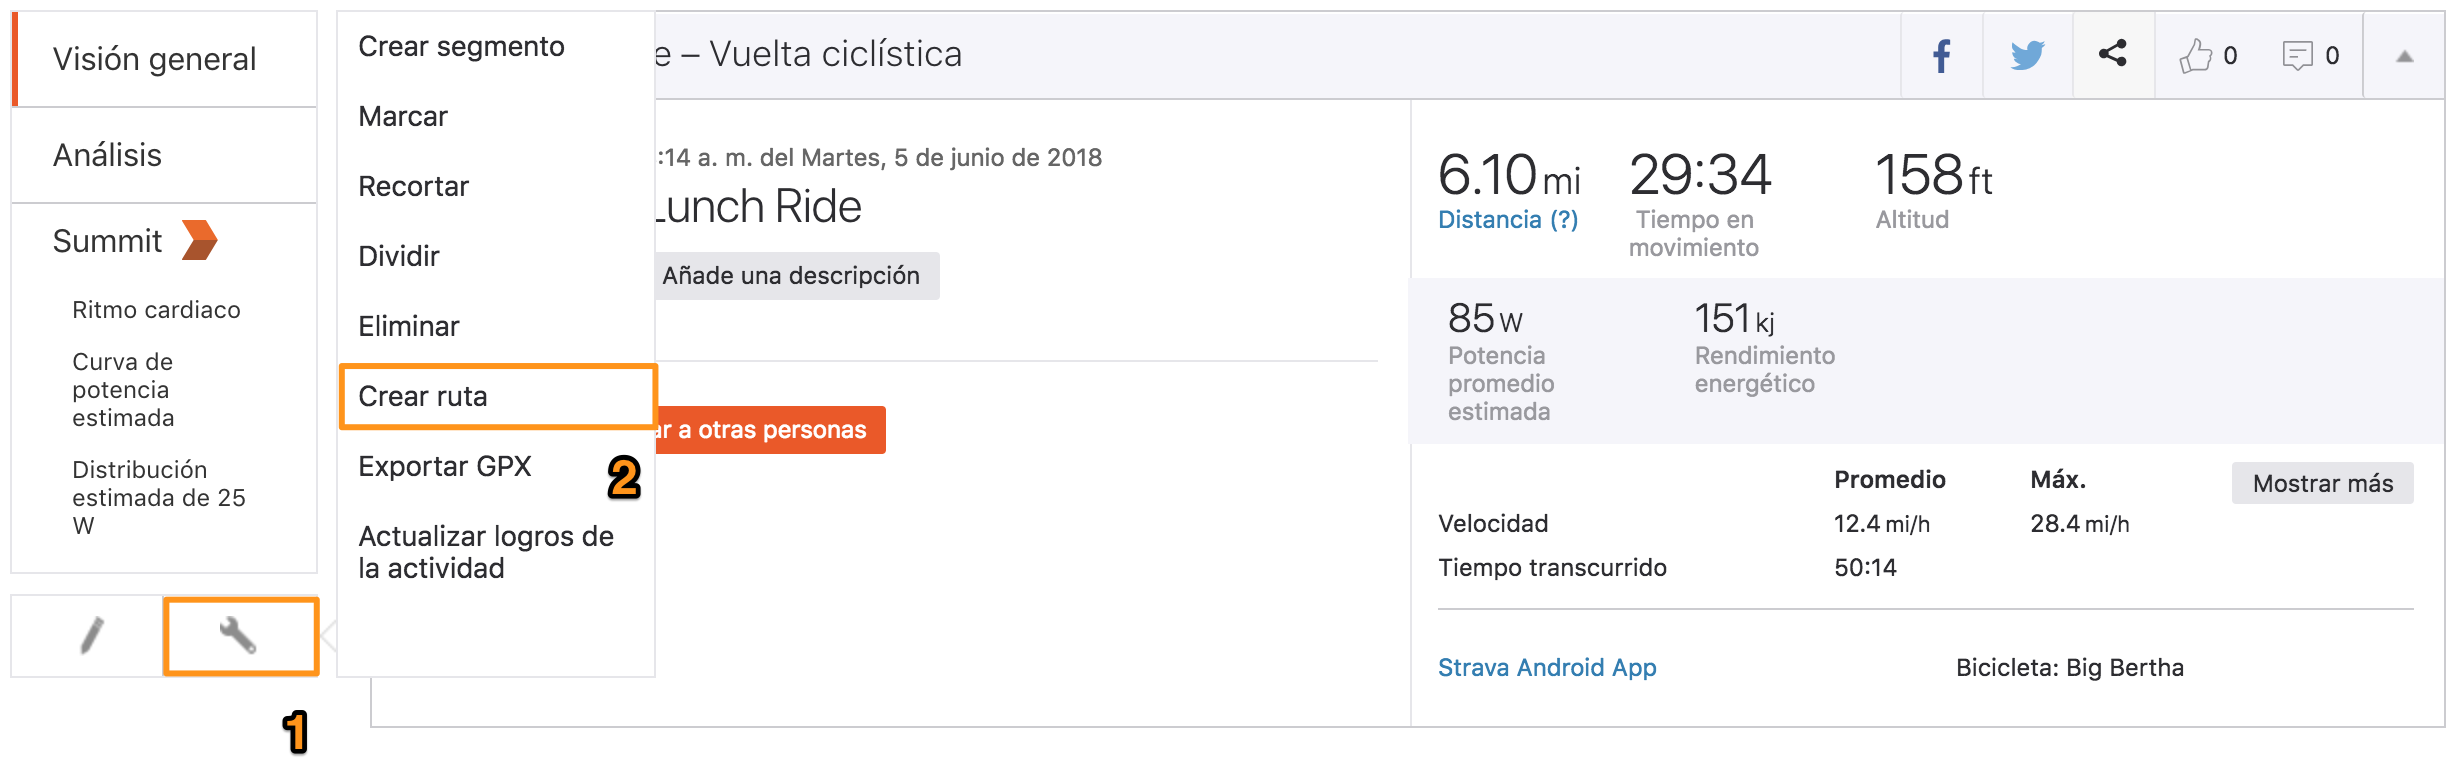 Lunch_Ride___Vuelta_ciclista___Strava.png